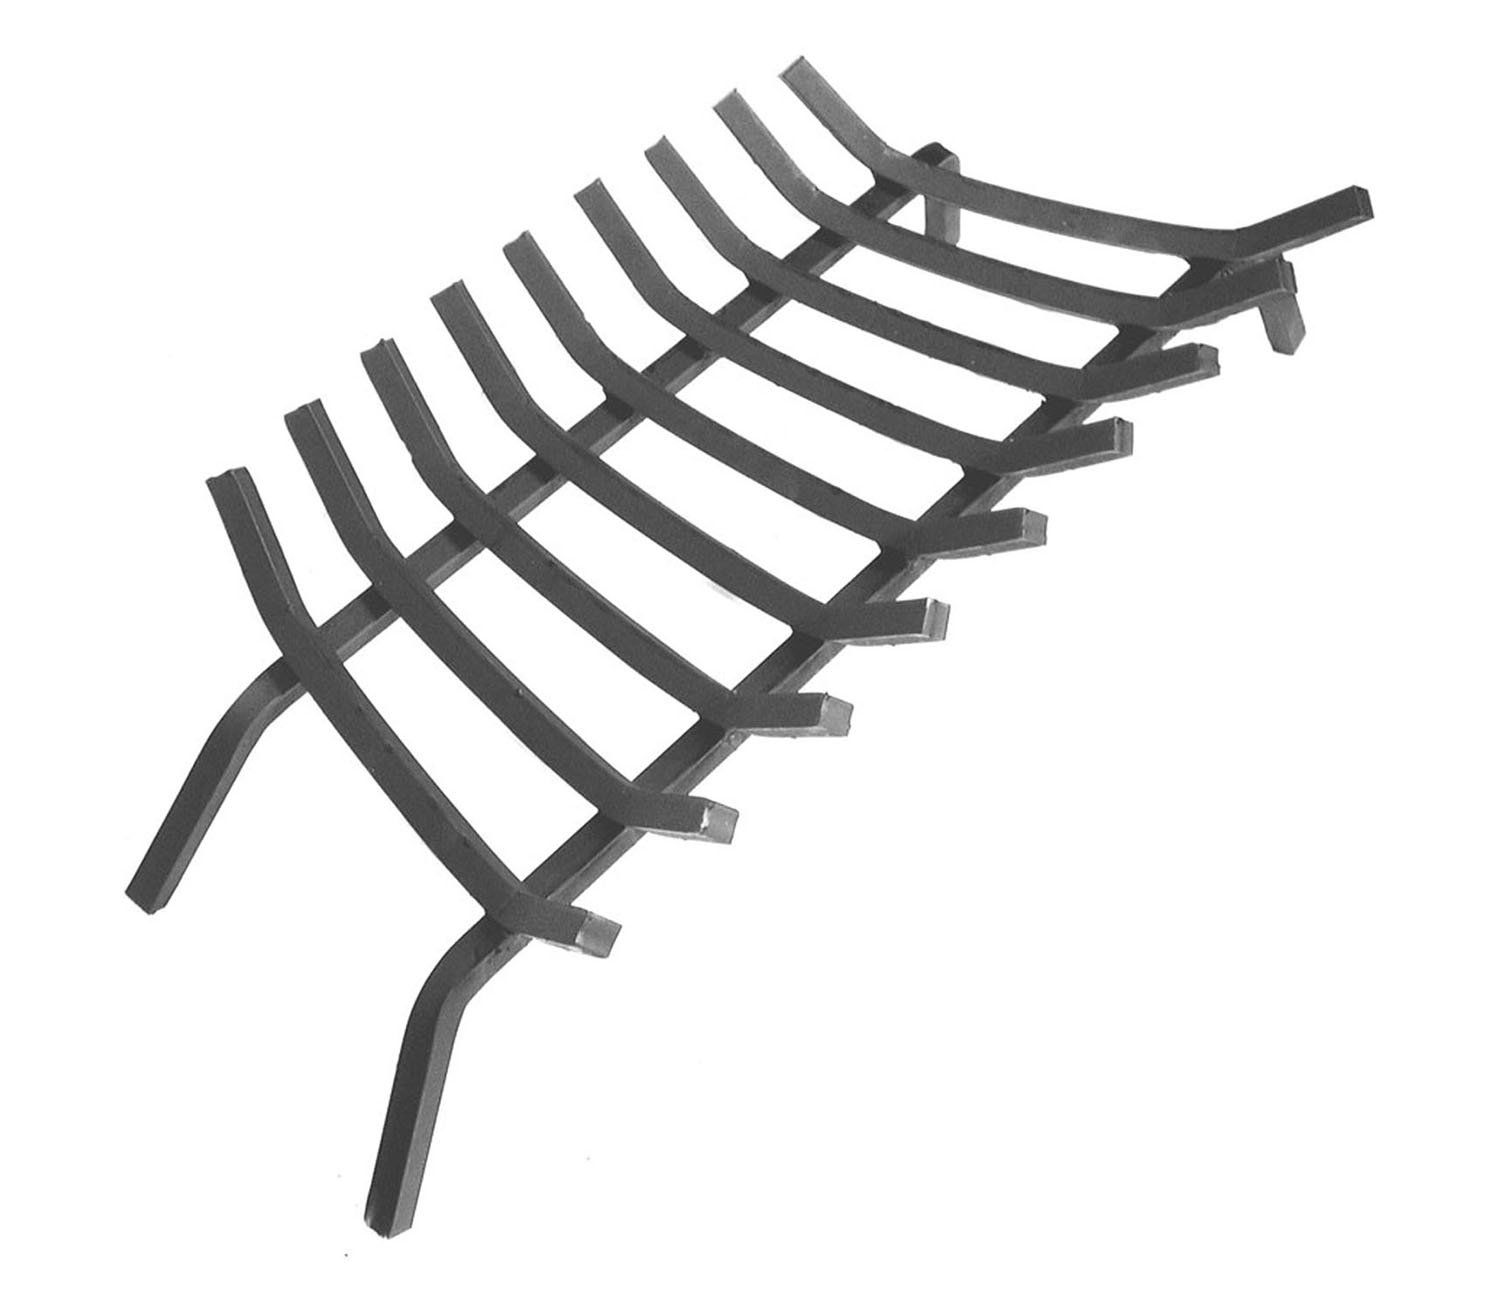 amazon com extra thick steel fireplace grate w 9 bars 36 inches